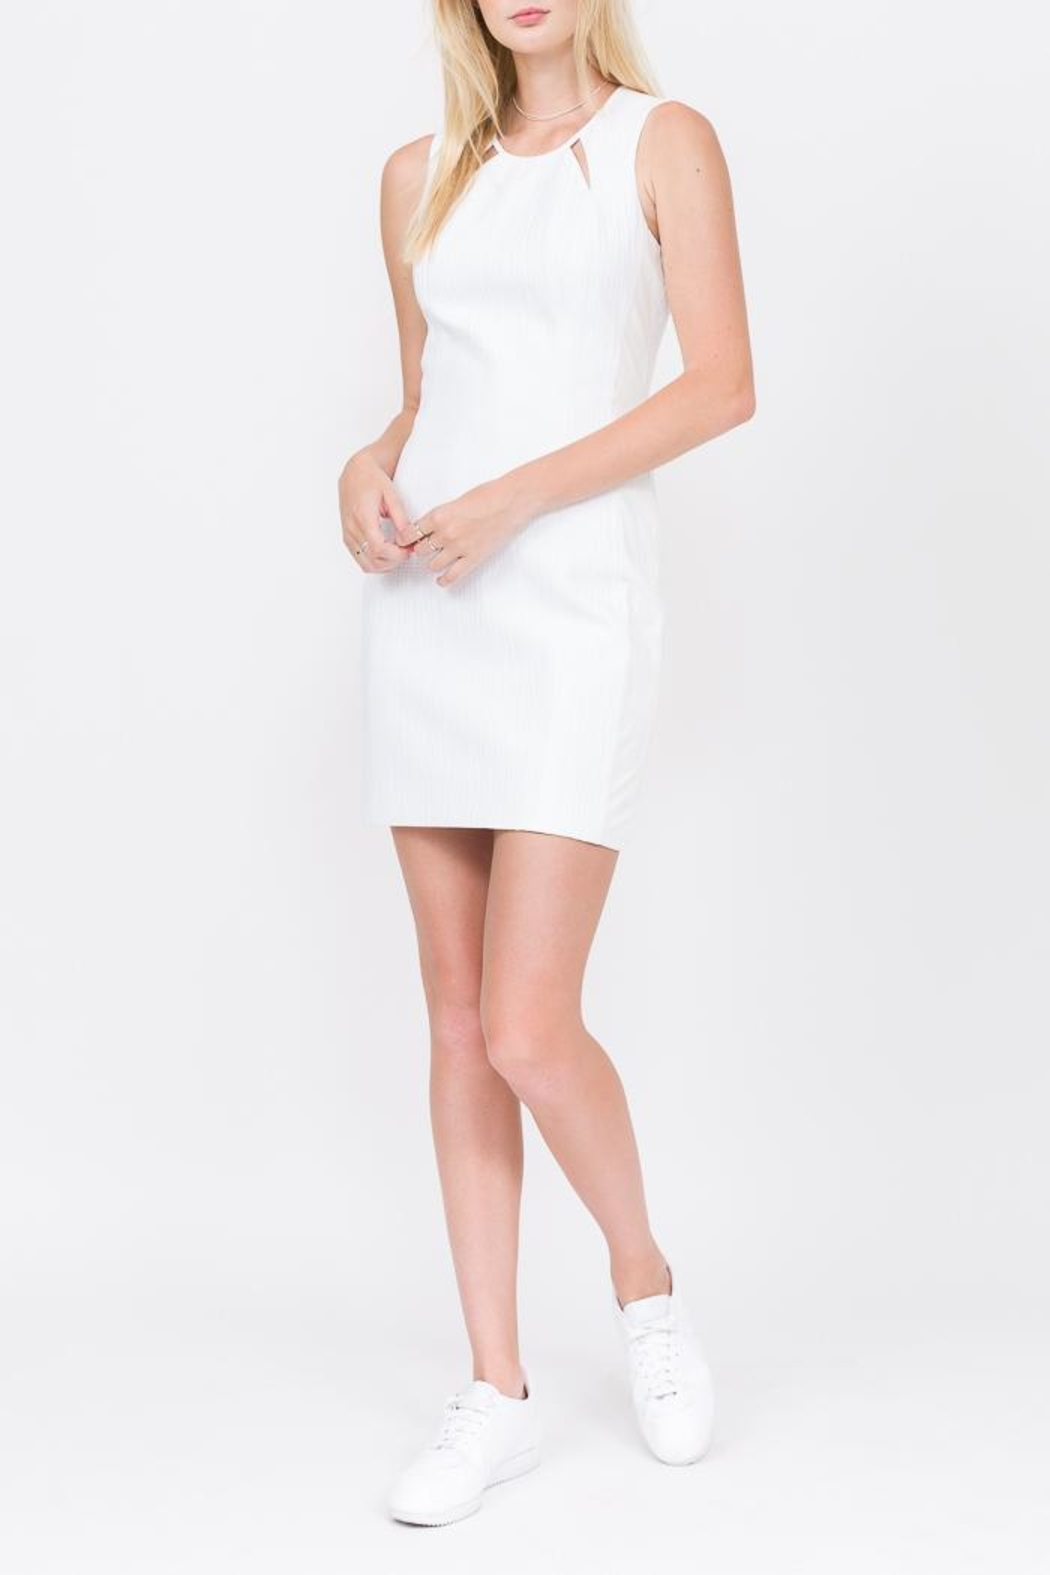 QUINN Callie Cut-Out Dress - Main Image